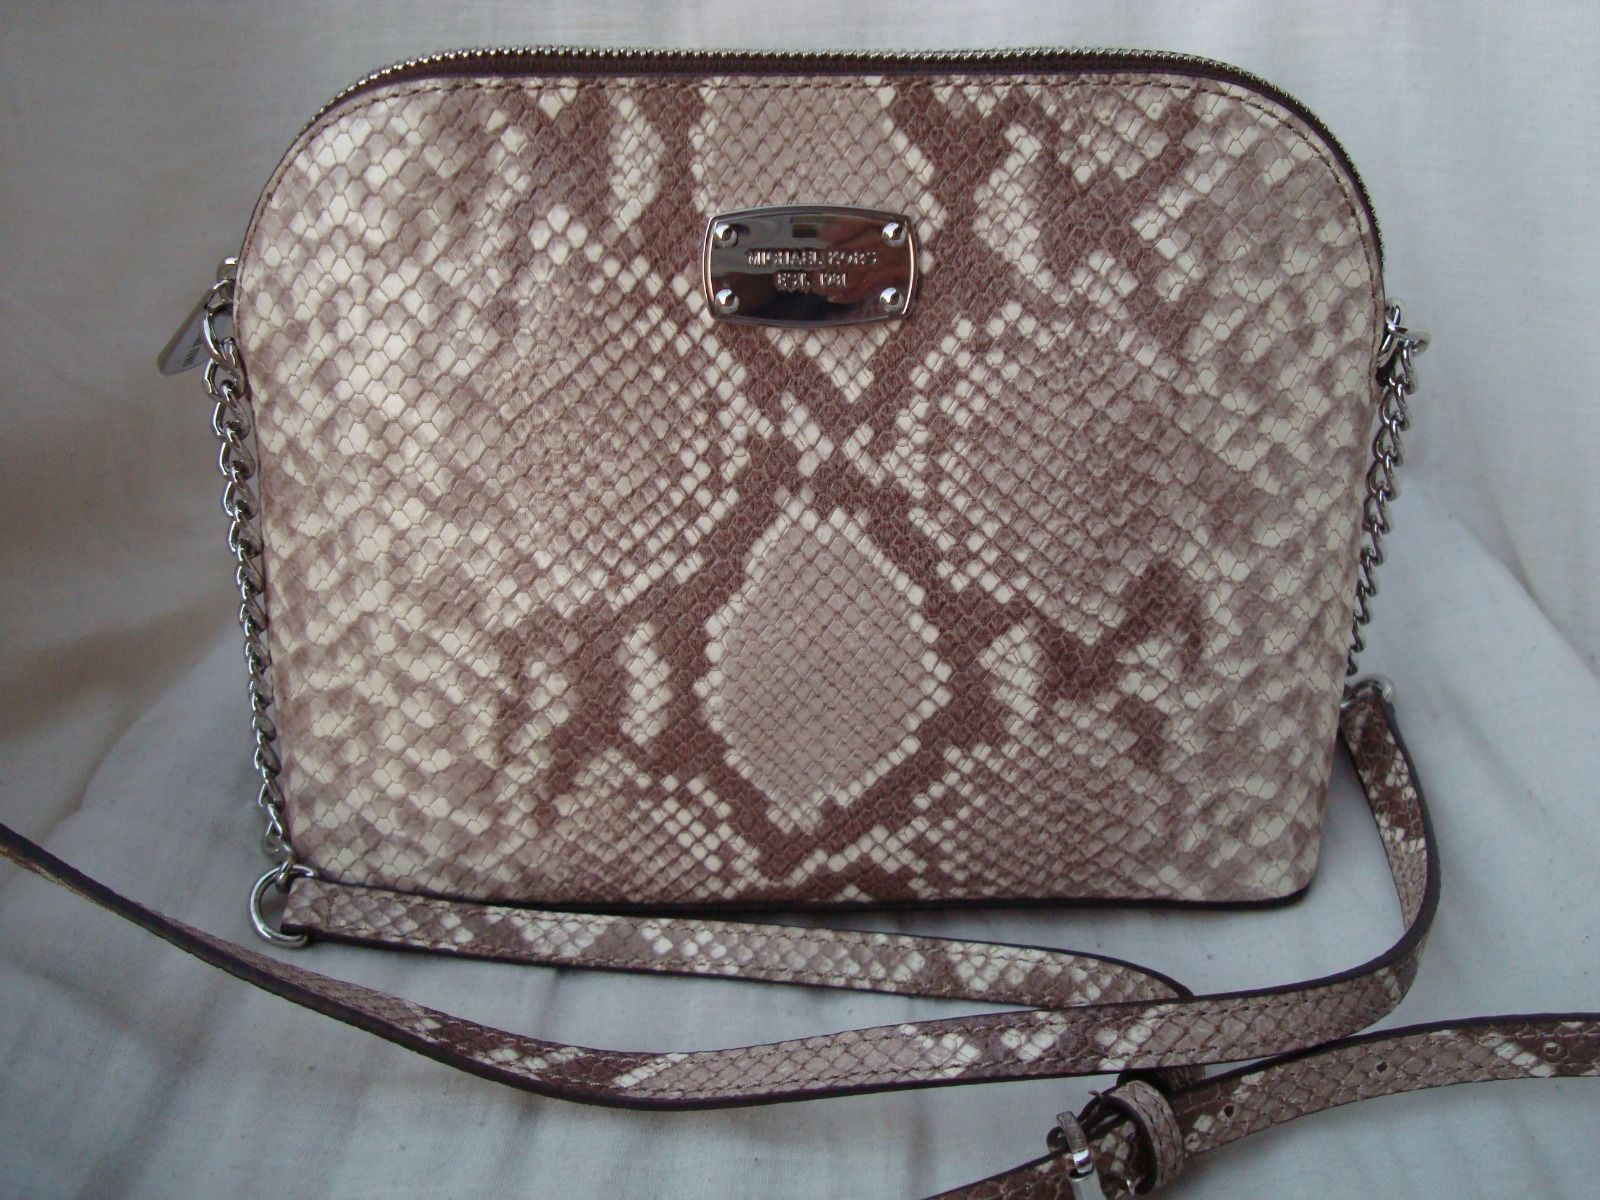 7a8444ee941f Michael Kors Cindy Lg Dome Crossbody and 50 similar items. S l1600